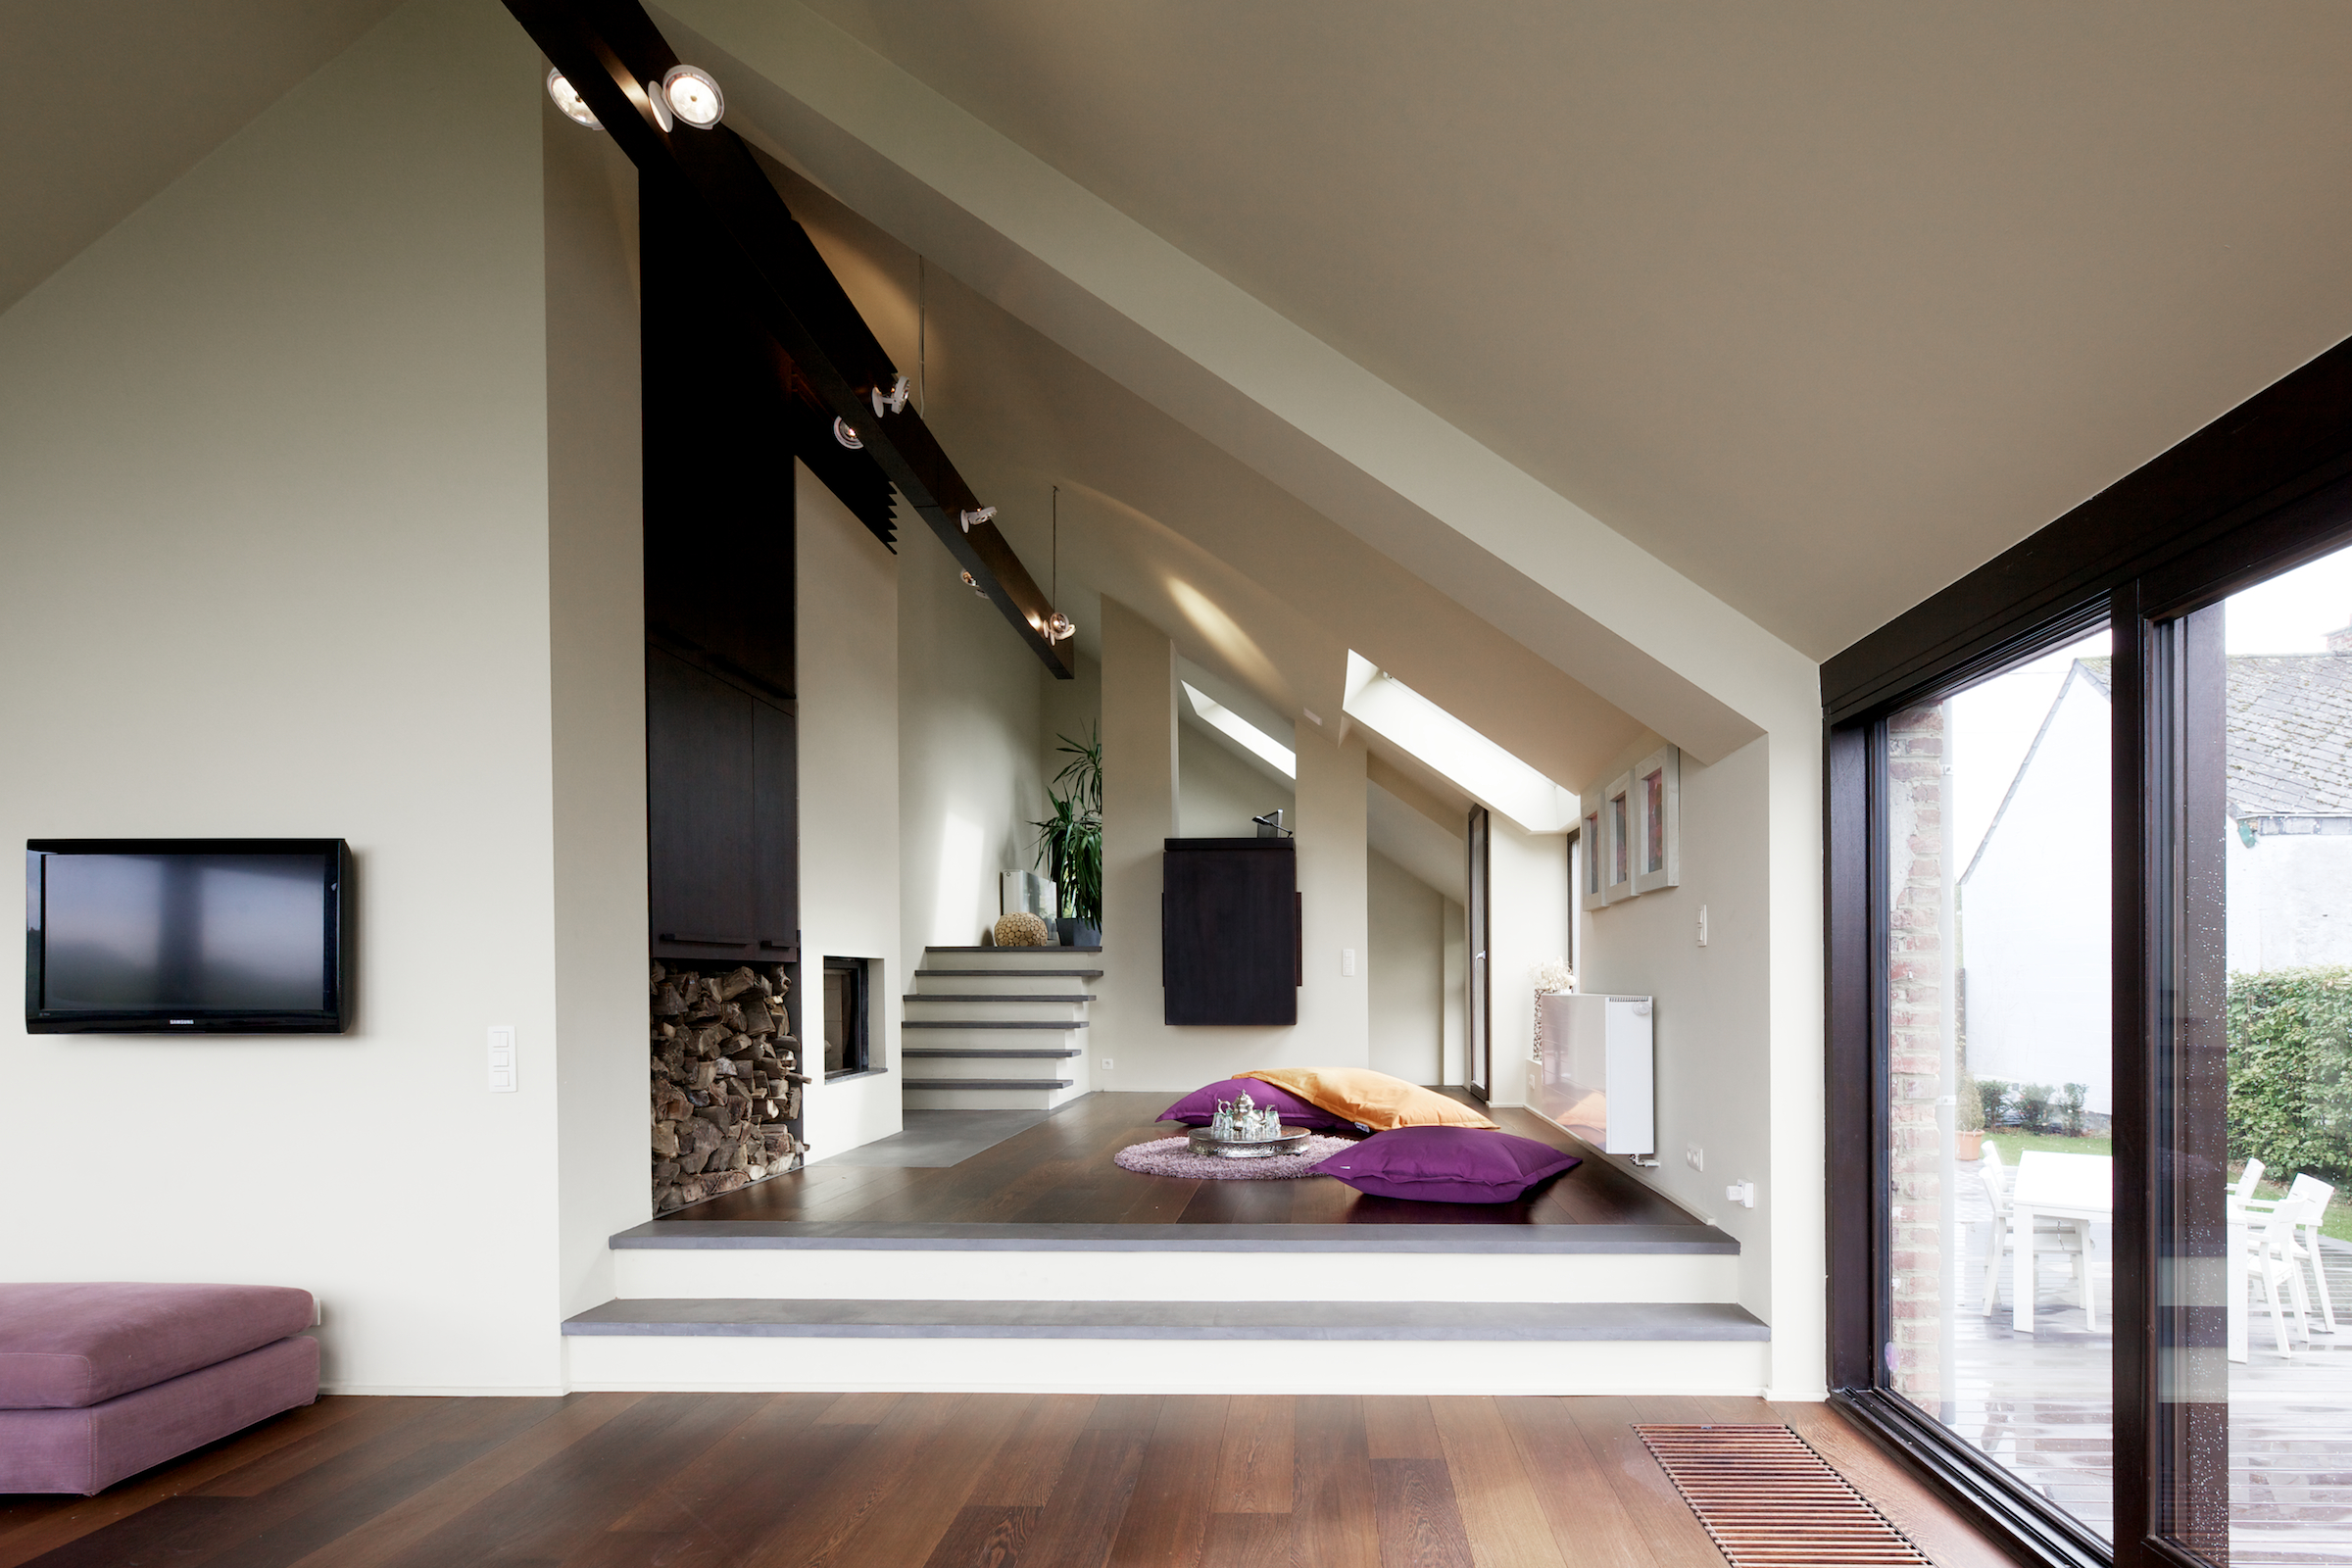 Christophe ternest architecte d 39 int rieur projets for Architecte d interieur dinard